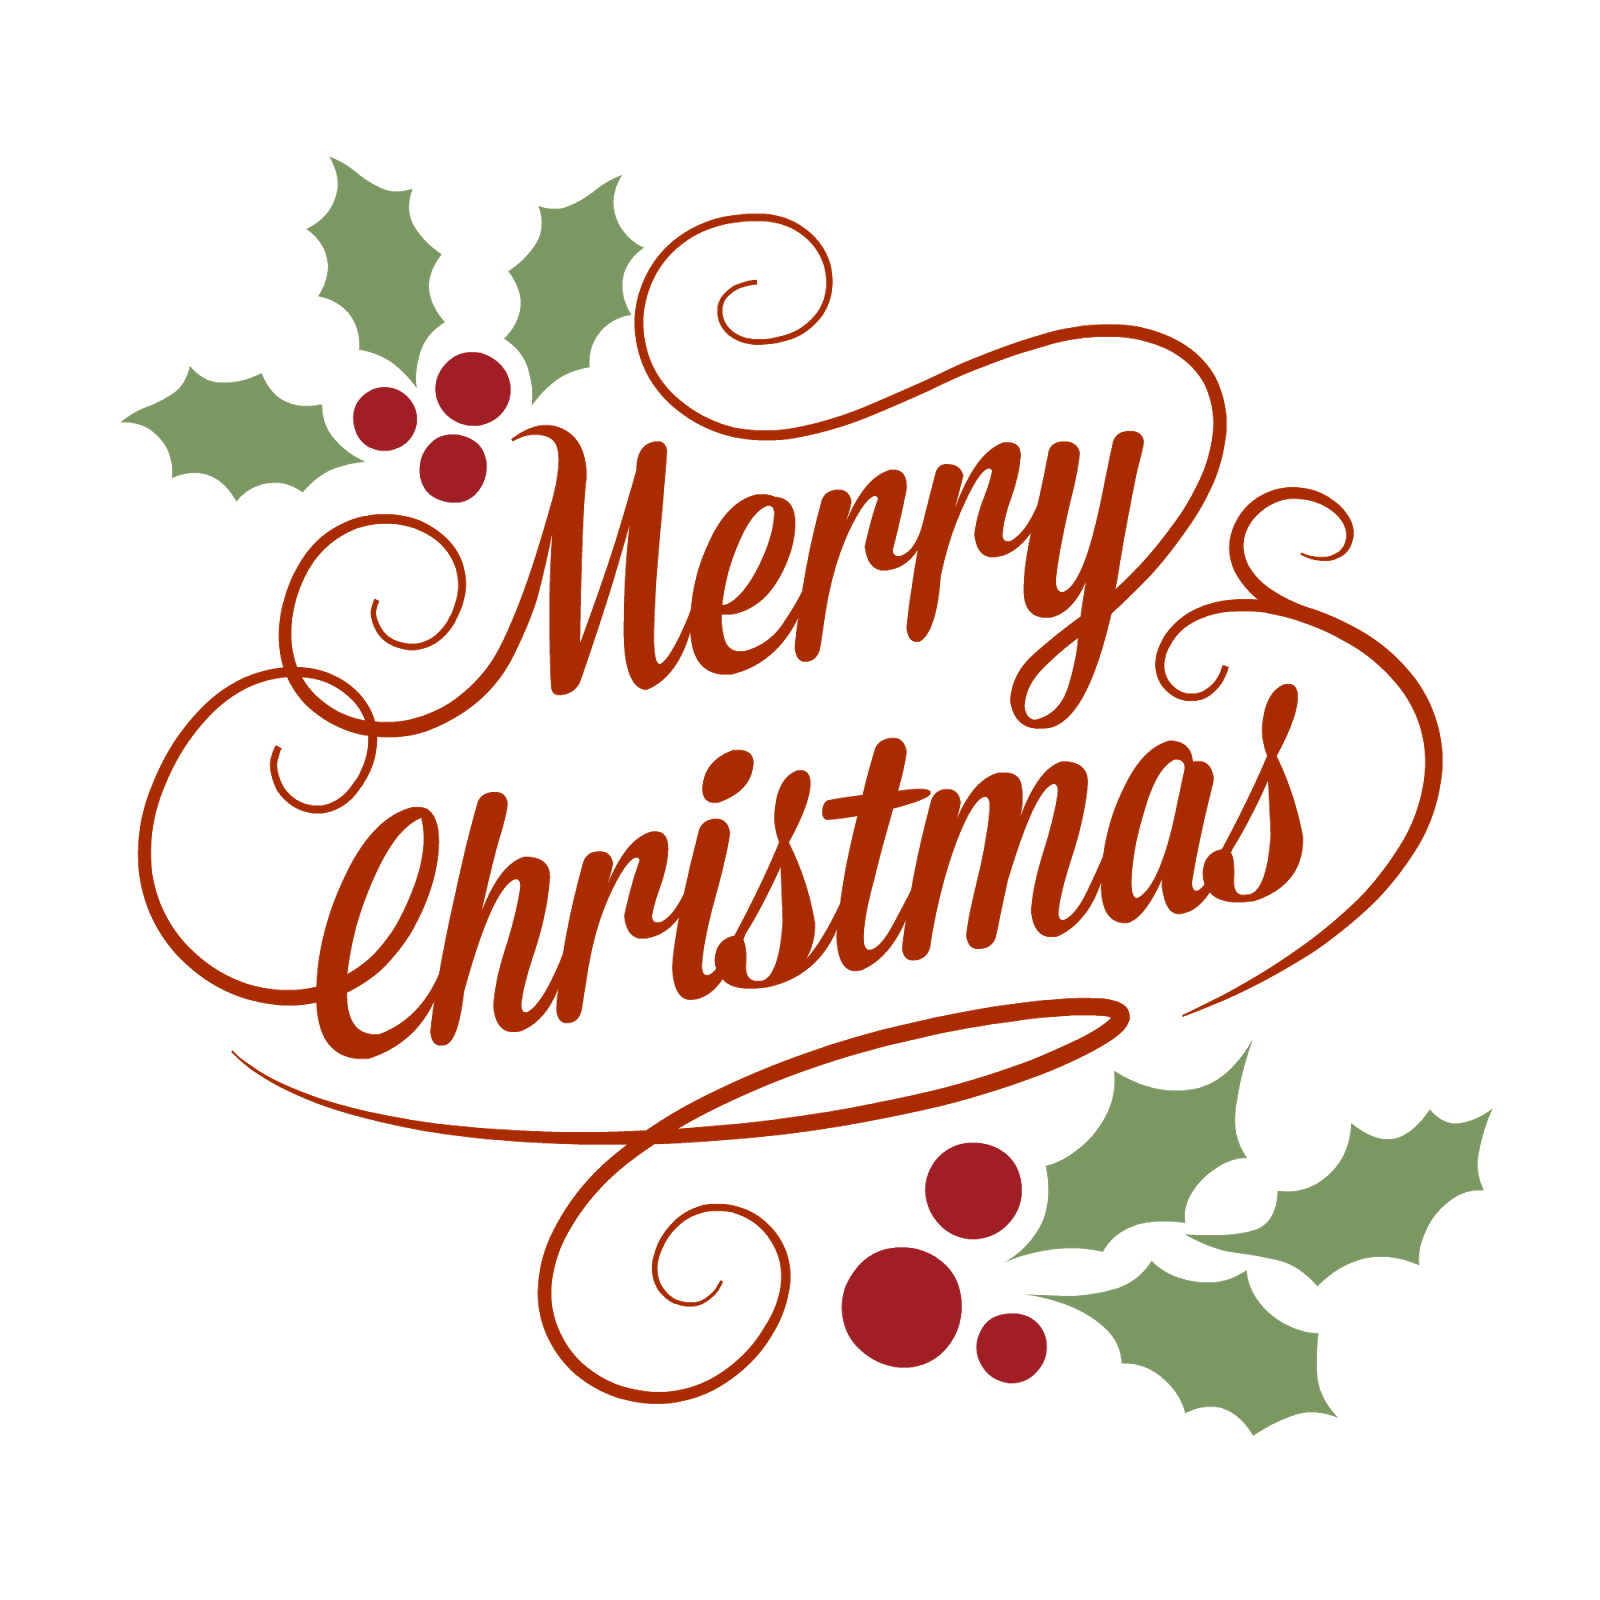 Christmas Pictures - Merry Christmas Text PNG